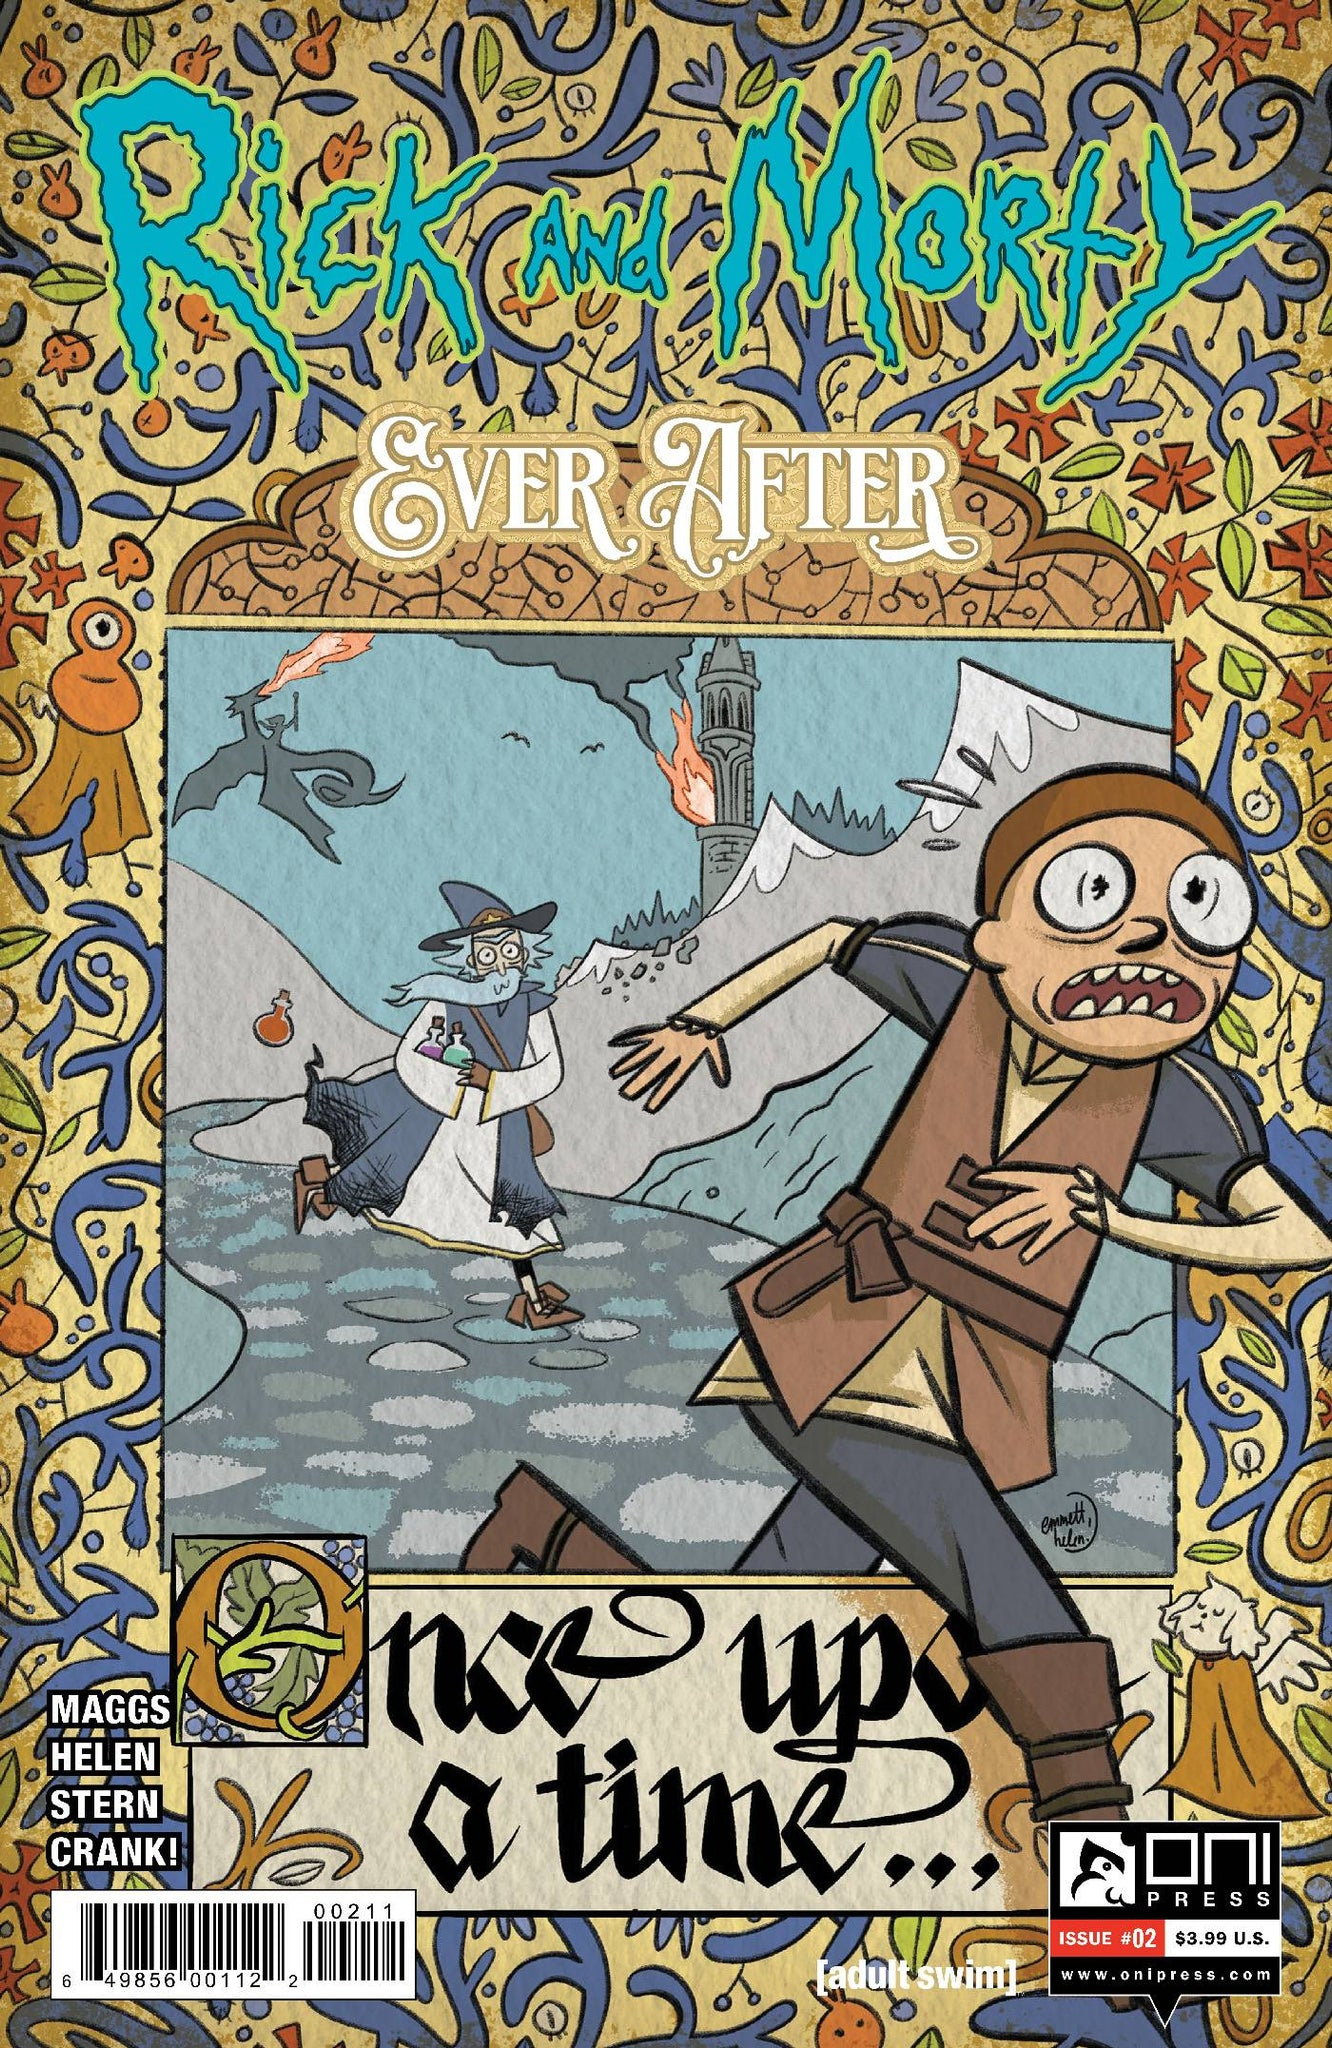 RICK & MORTY EVER AFTER #2 COVER A HELEN (11/25/2020)